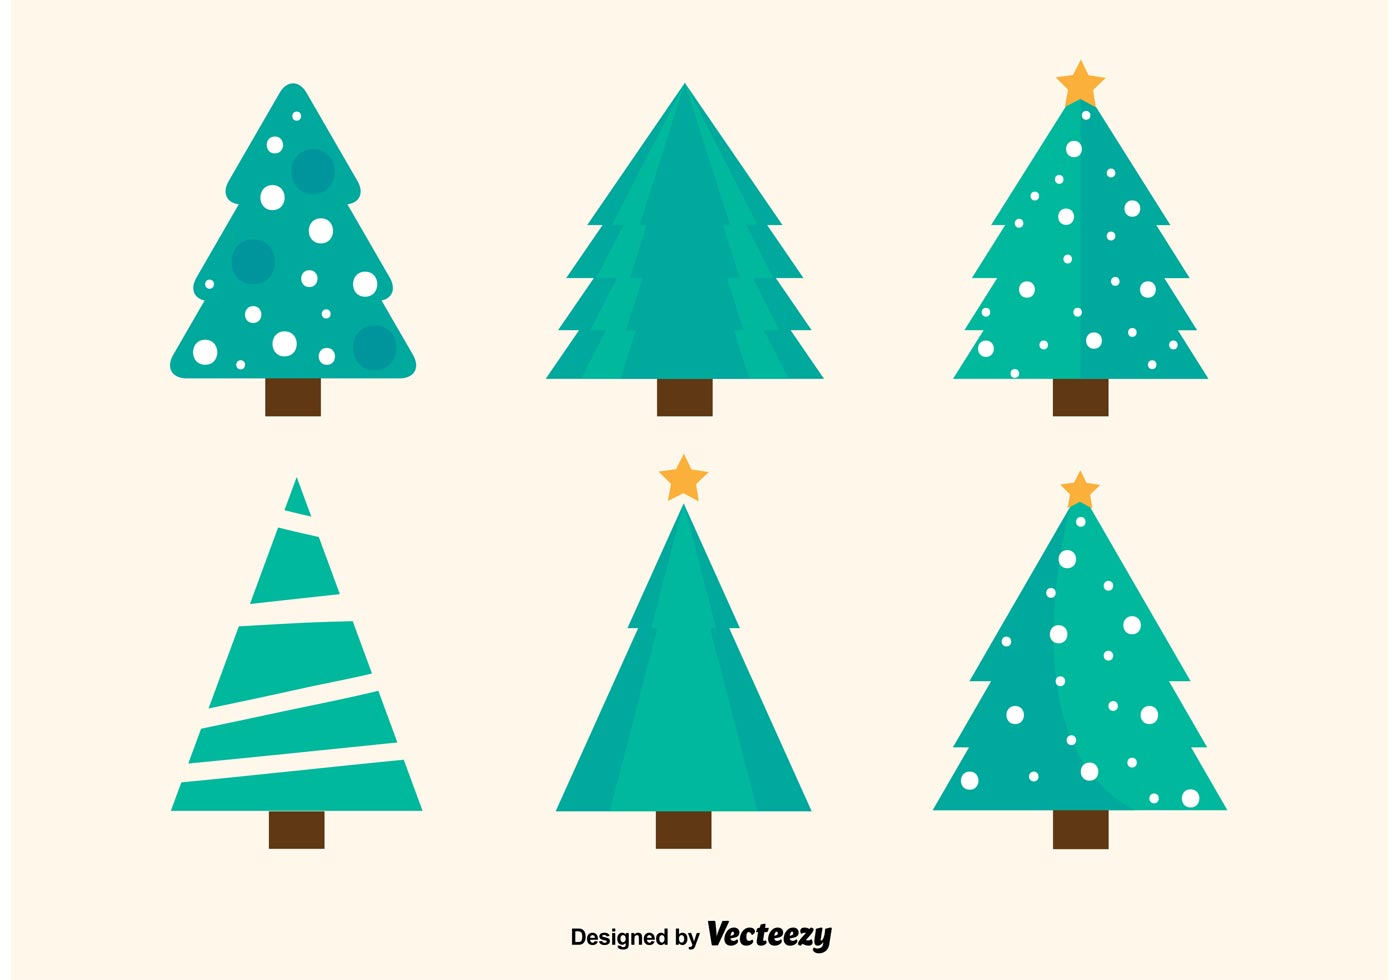 Flat Christmas Trees Vectors  Download Free Vector Art. Cheap Outdoor Christmas Decorations Australia. Mr Christmas Animated Christmas Decorations. Gold Coast Christmas House Decorations. Liverpool Fc Christmas Tree Decorations. Outdoor Christmas Decorations Nativity Set. Christmas Ornaments Display Tree. Christmas Tree And Music. Exploding Christmas Table Decorations